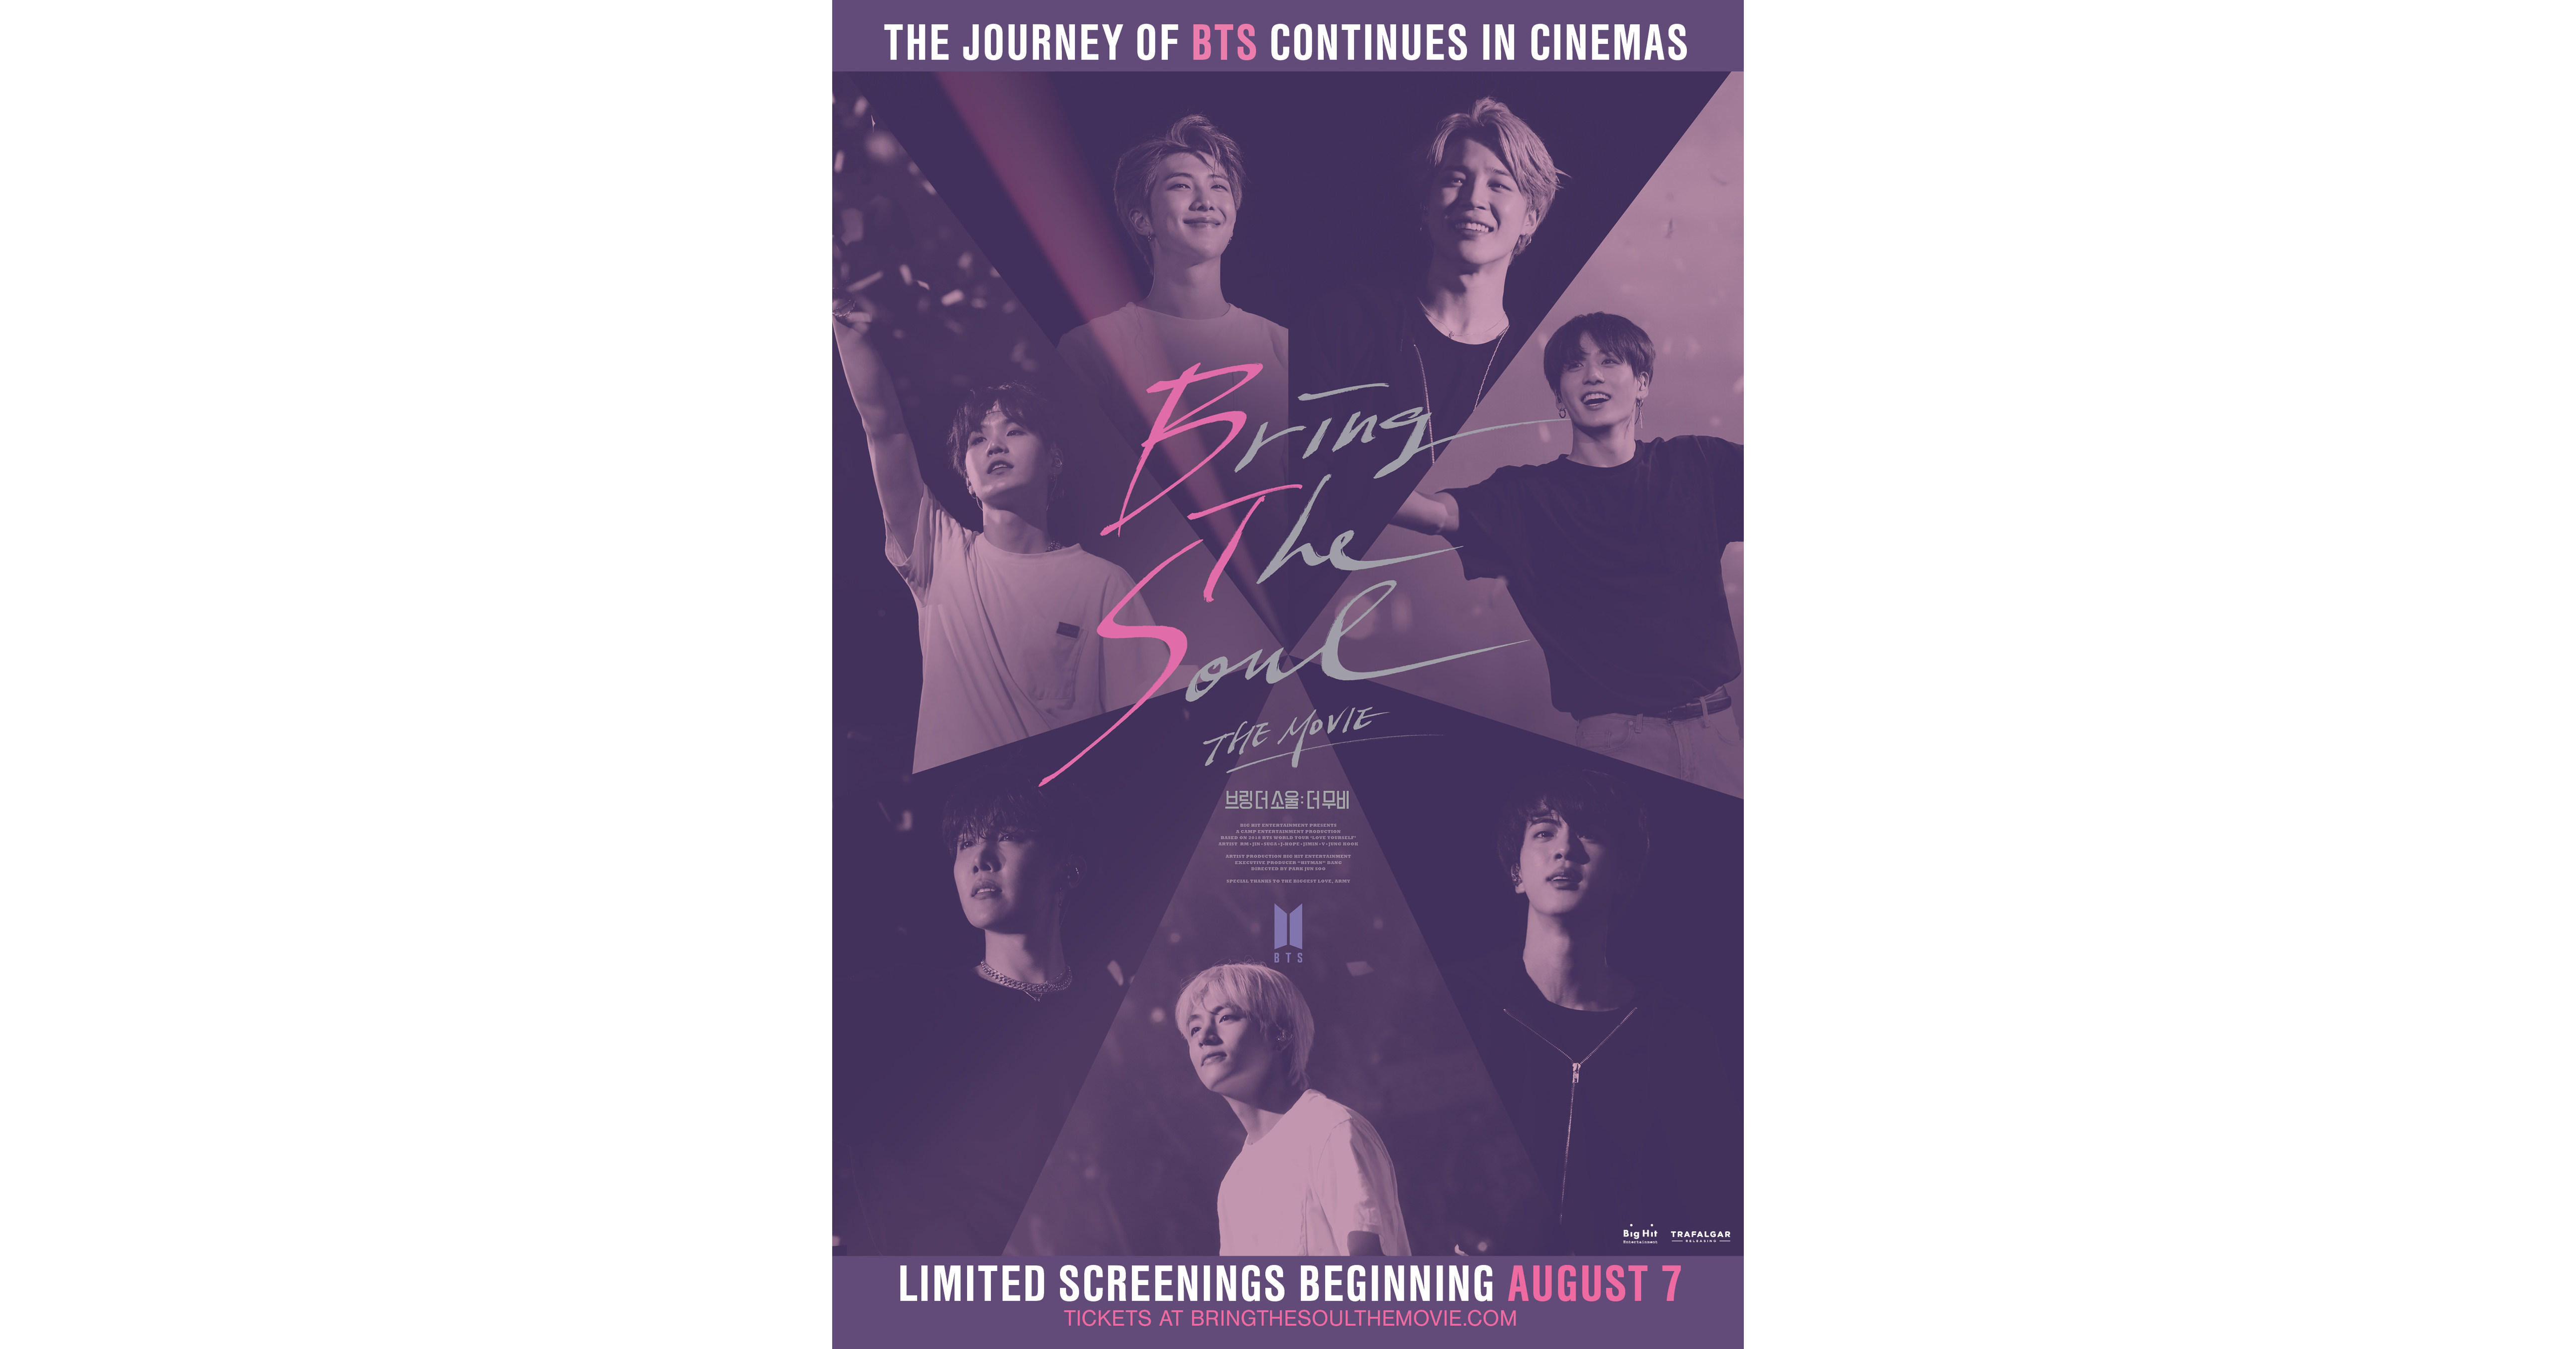 The Latest Bts Feature Film Bring The Soul The Movie In Theaters